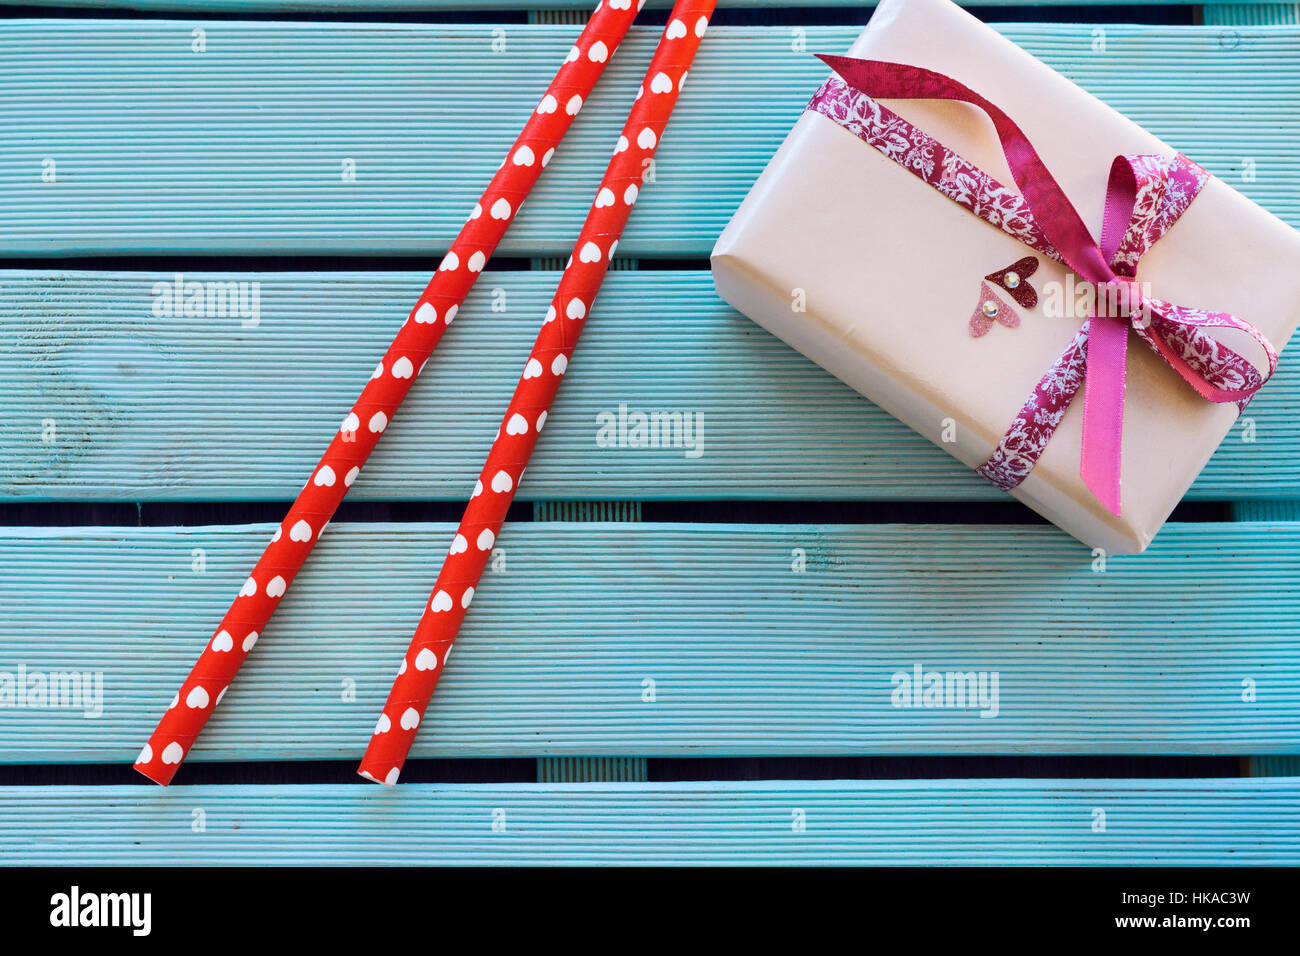 Overhead of handmade gift with vibrant bow tie and red paper straws with hearts shape on blue wooden background Stock Photo